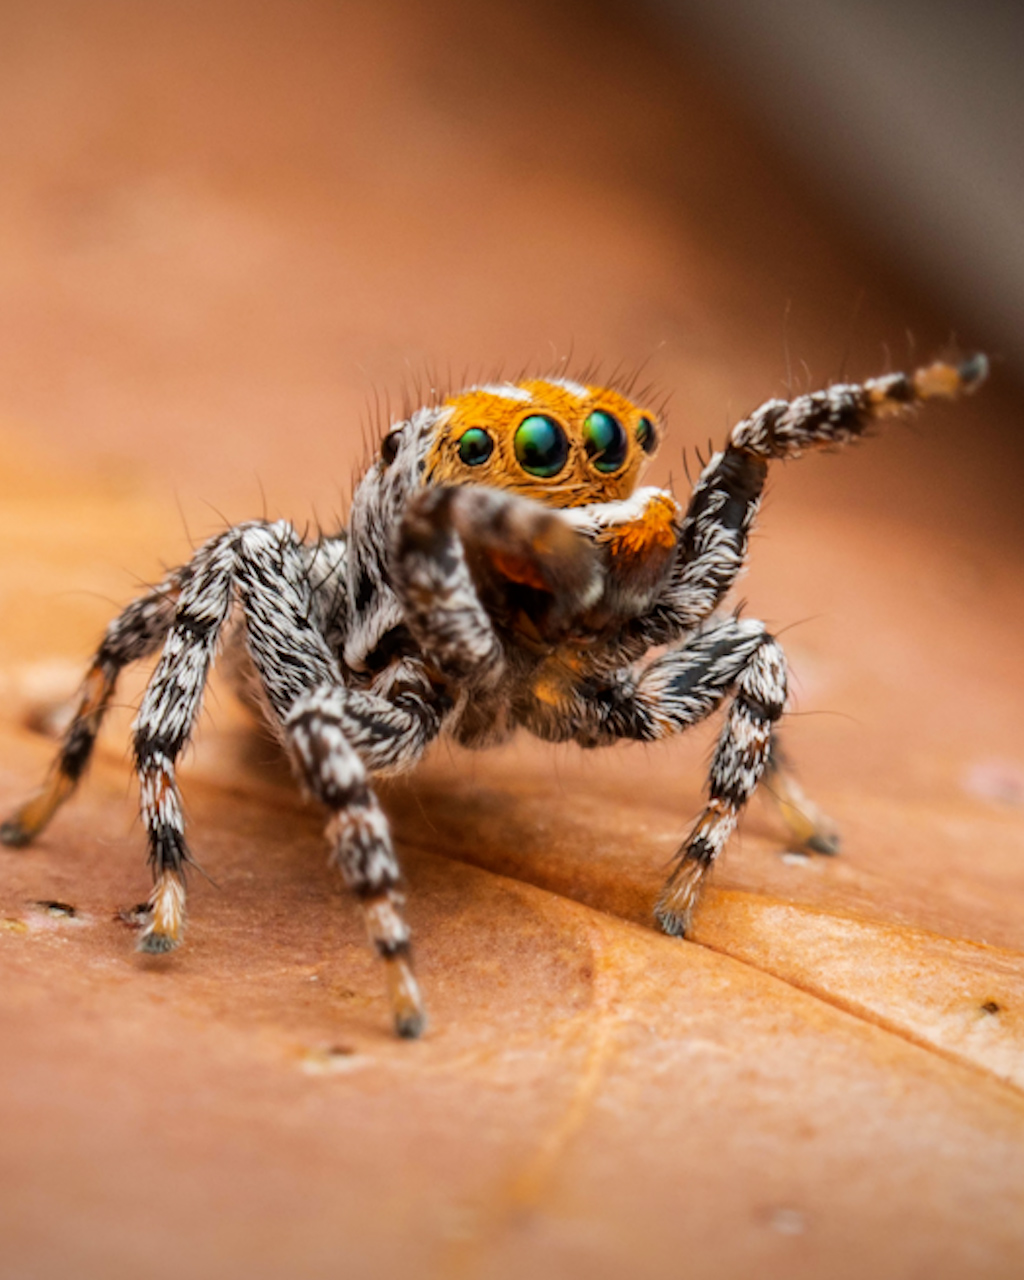 New species of spider named after beloved children's movie